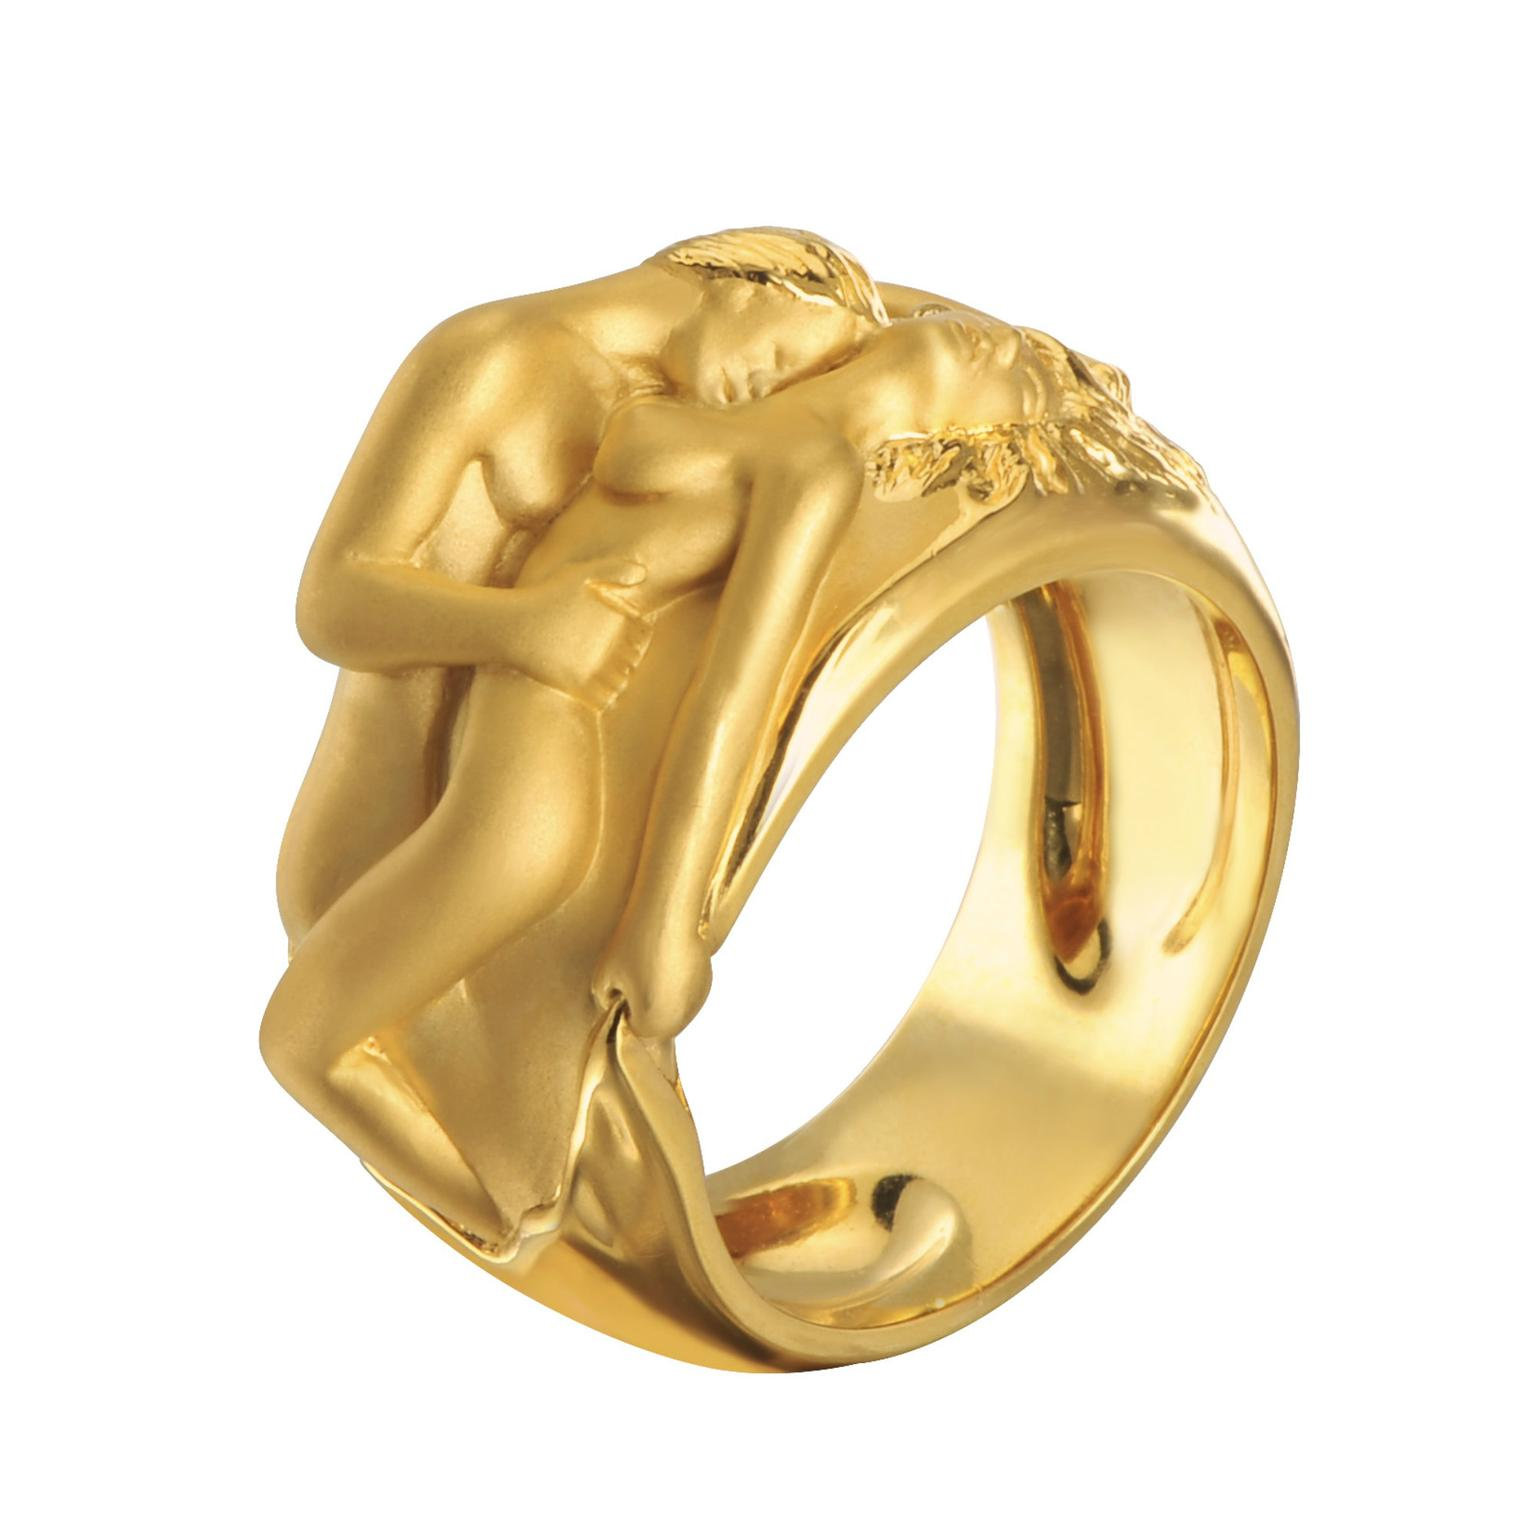 Carrera y Carrera Promesa gold ring